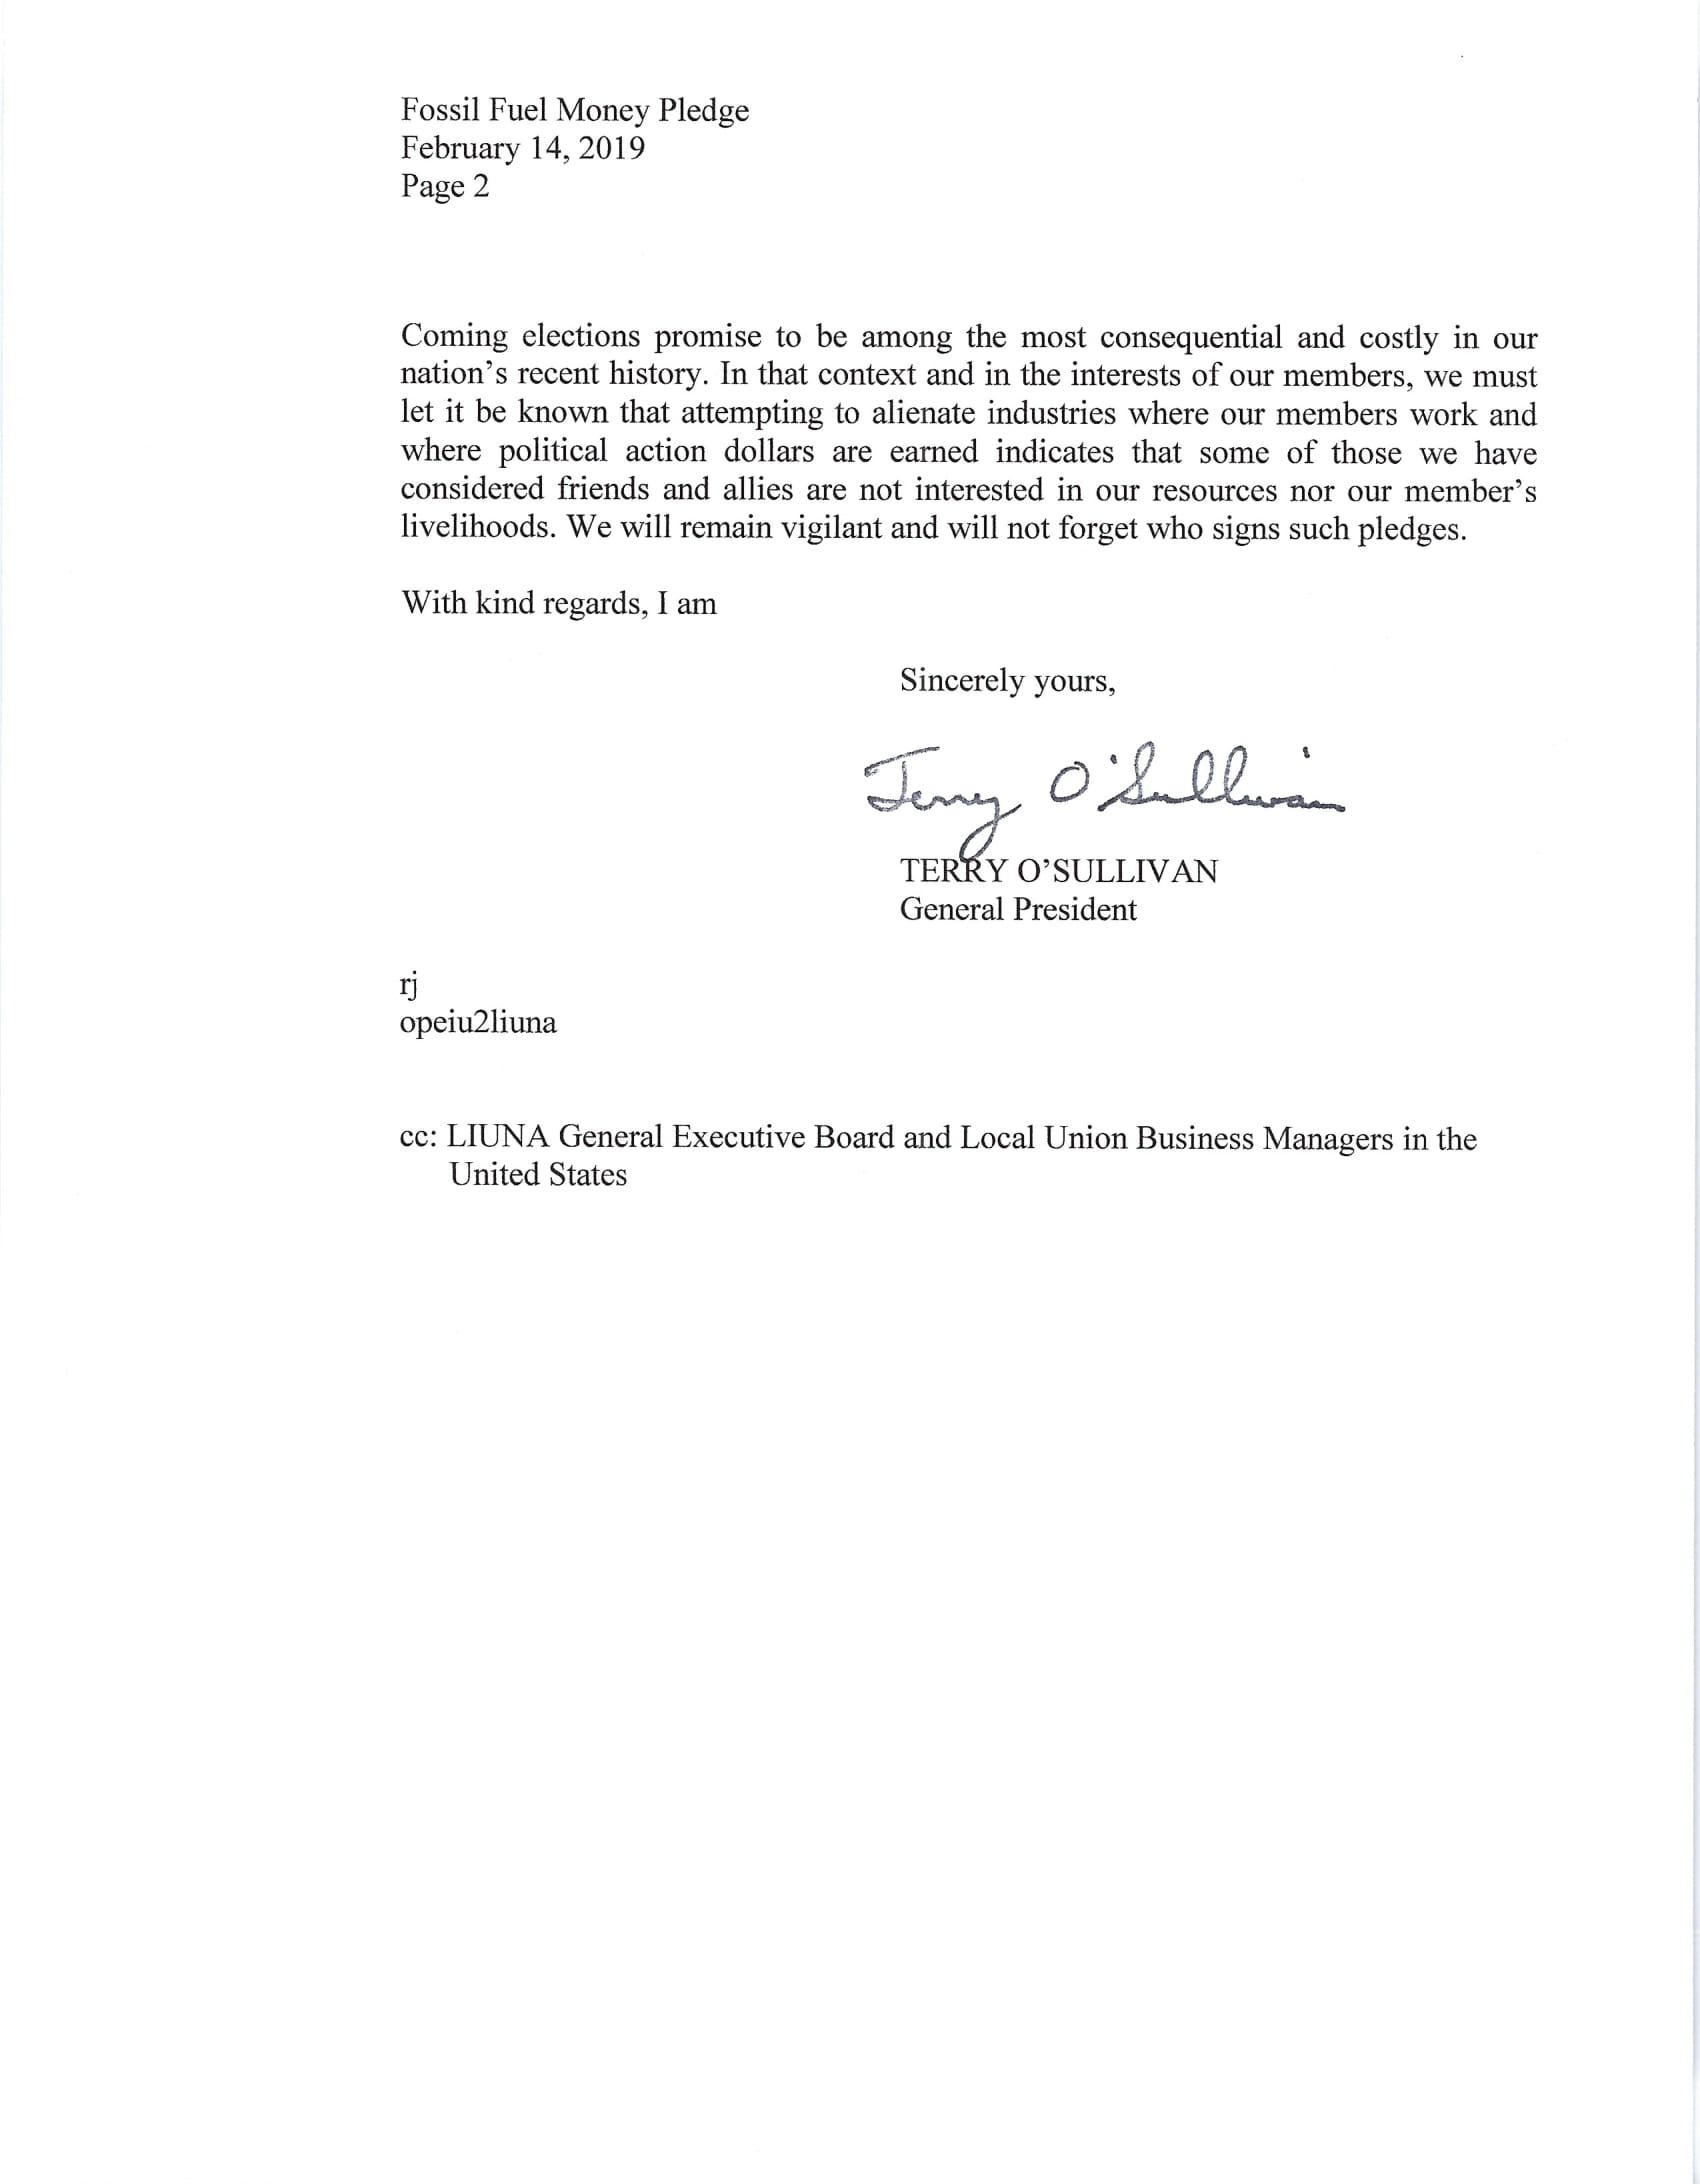 Senate Fossil Fuel Money Pledge Ltr Feb 2019-2.jpg